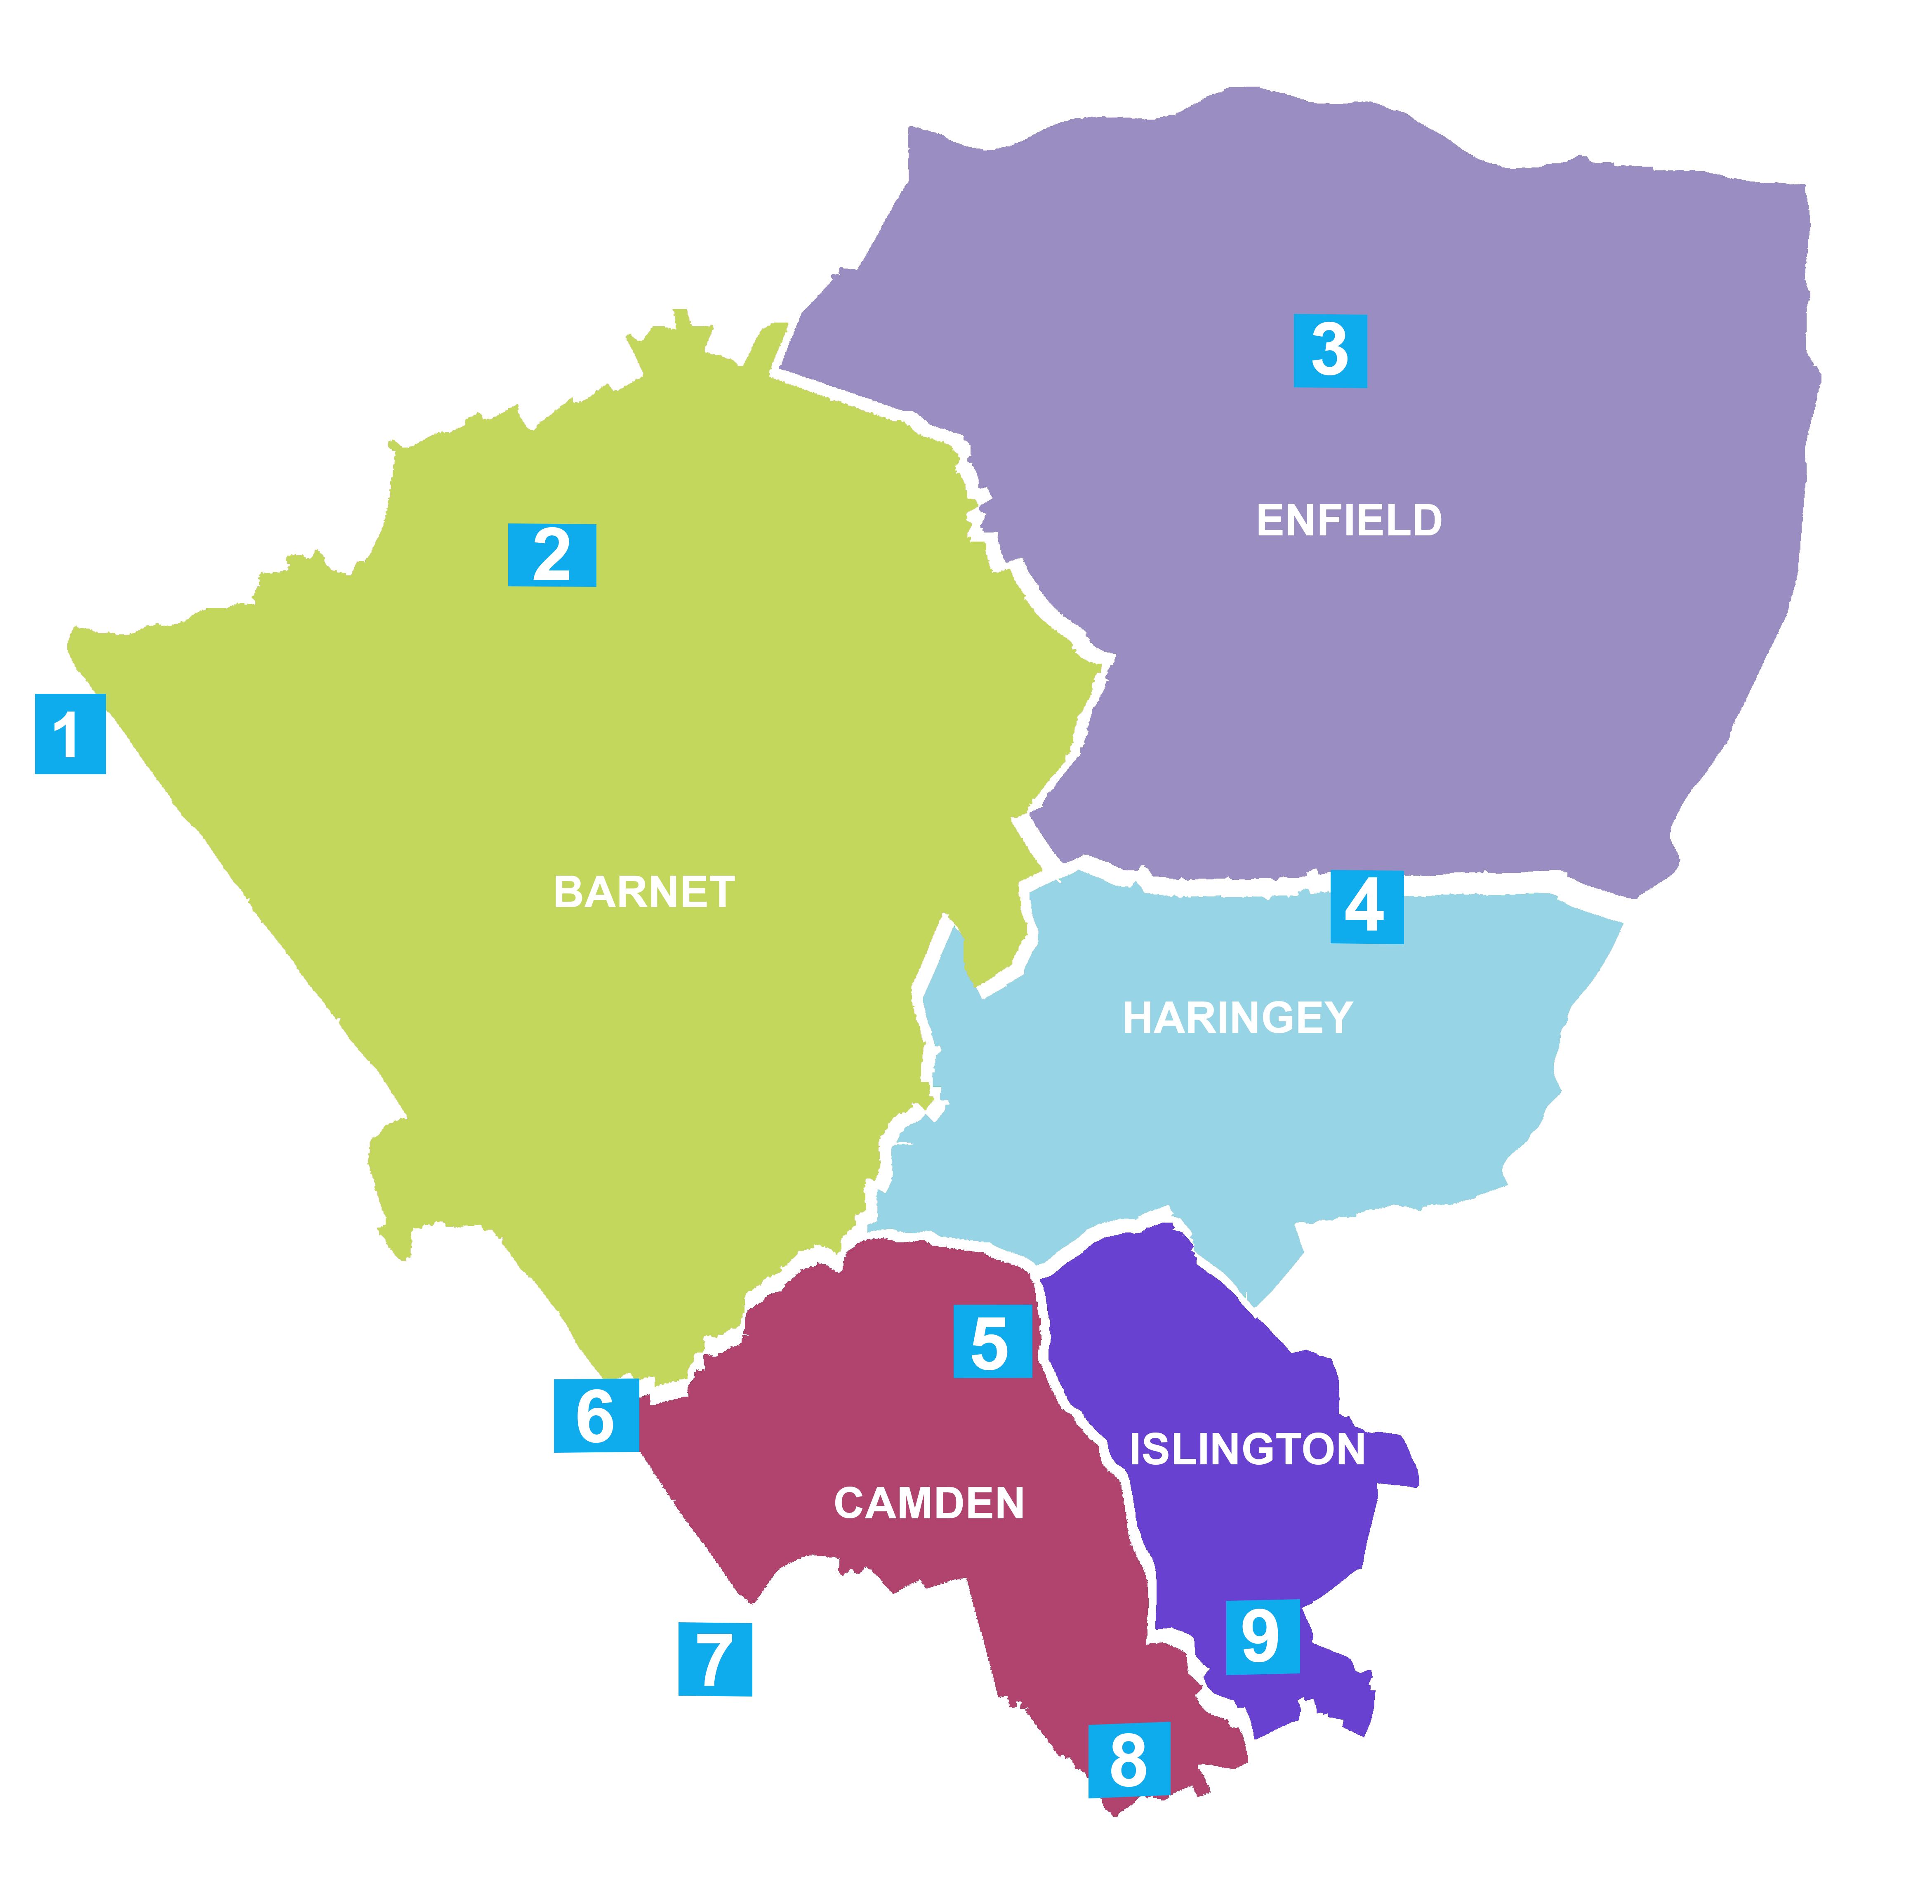 North Central London Cancer Alliance map